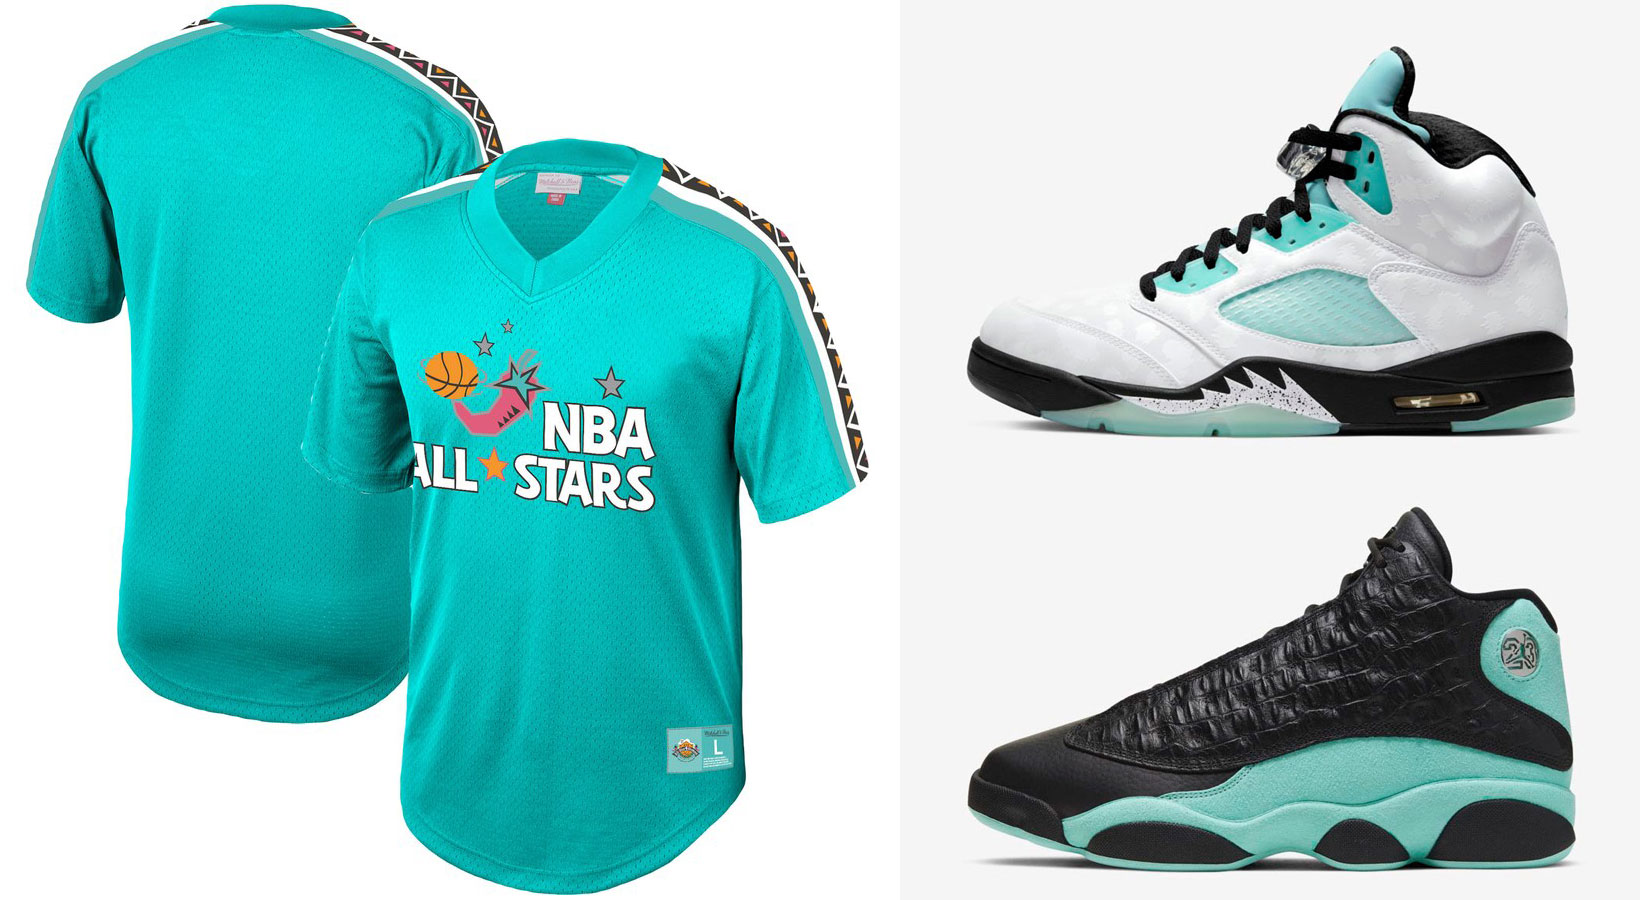 air-jordan-island-green-nba-retro-jersey-shirt-match